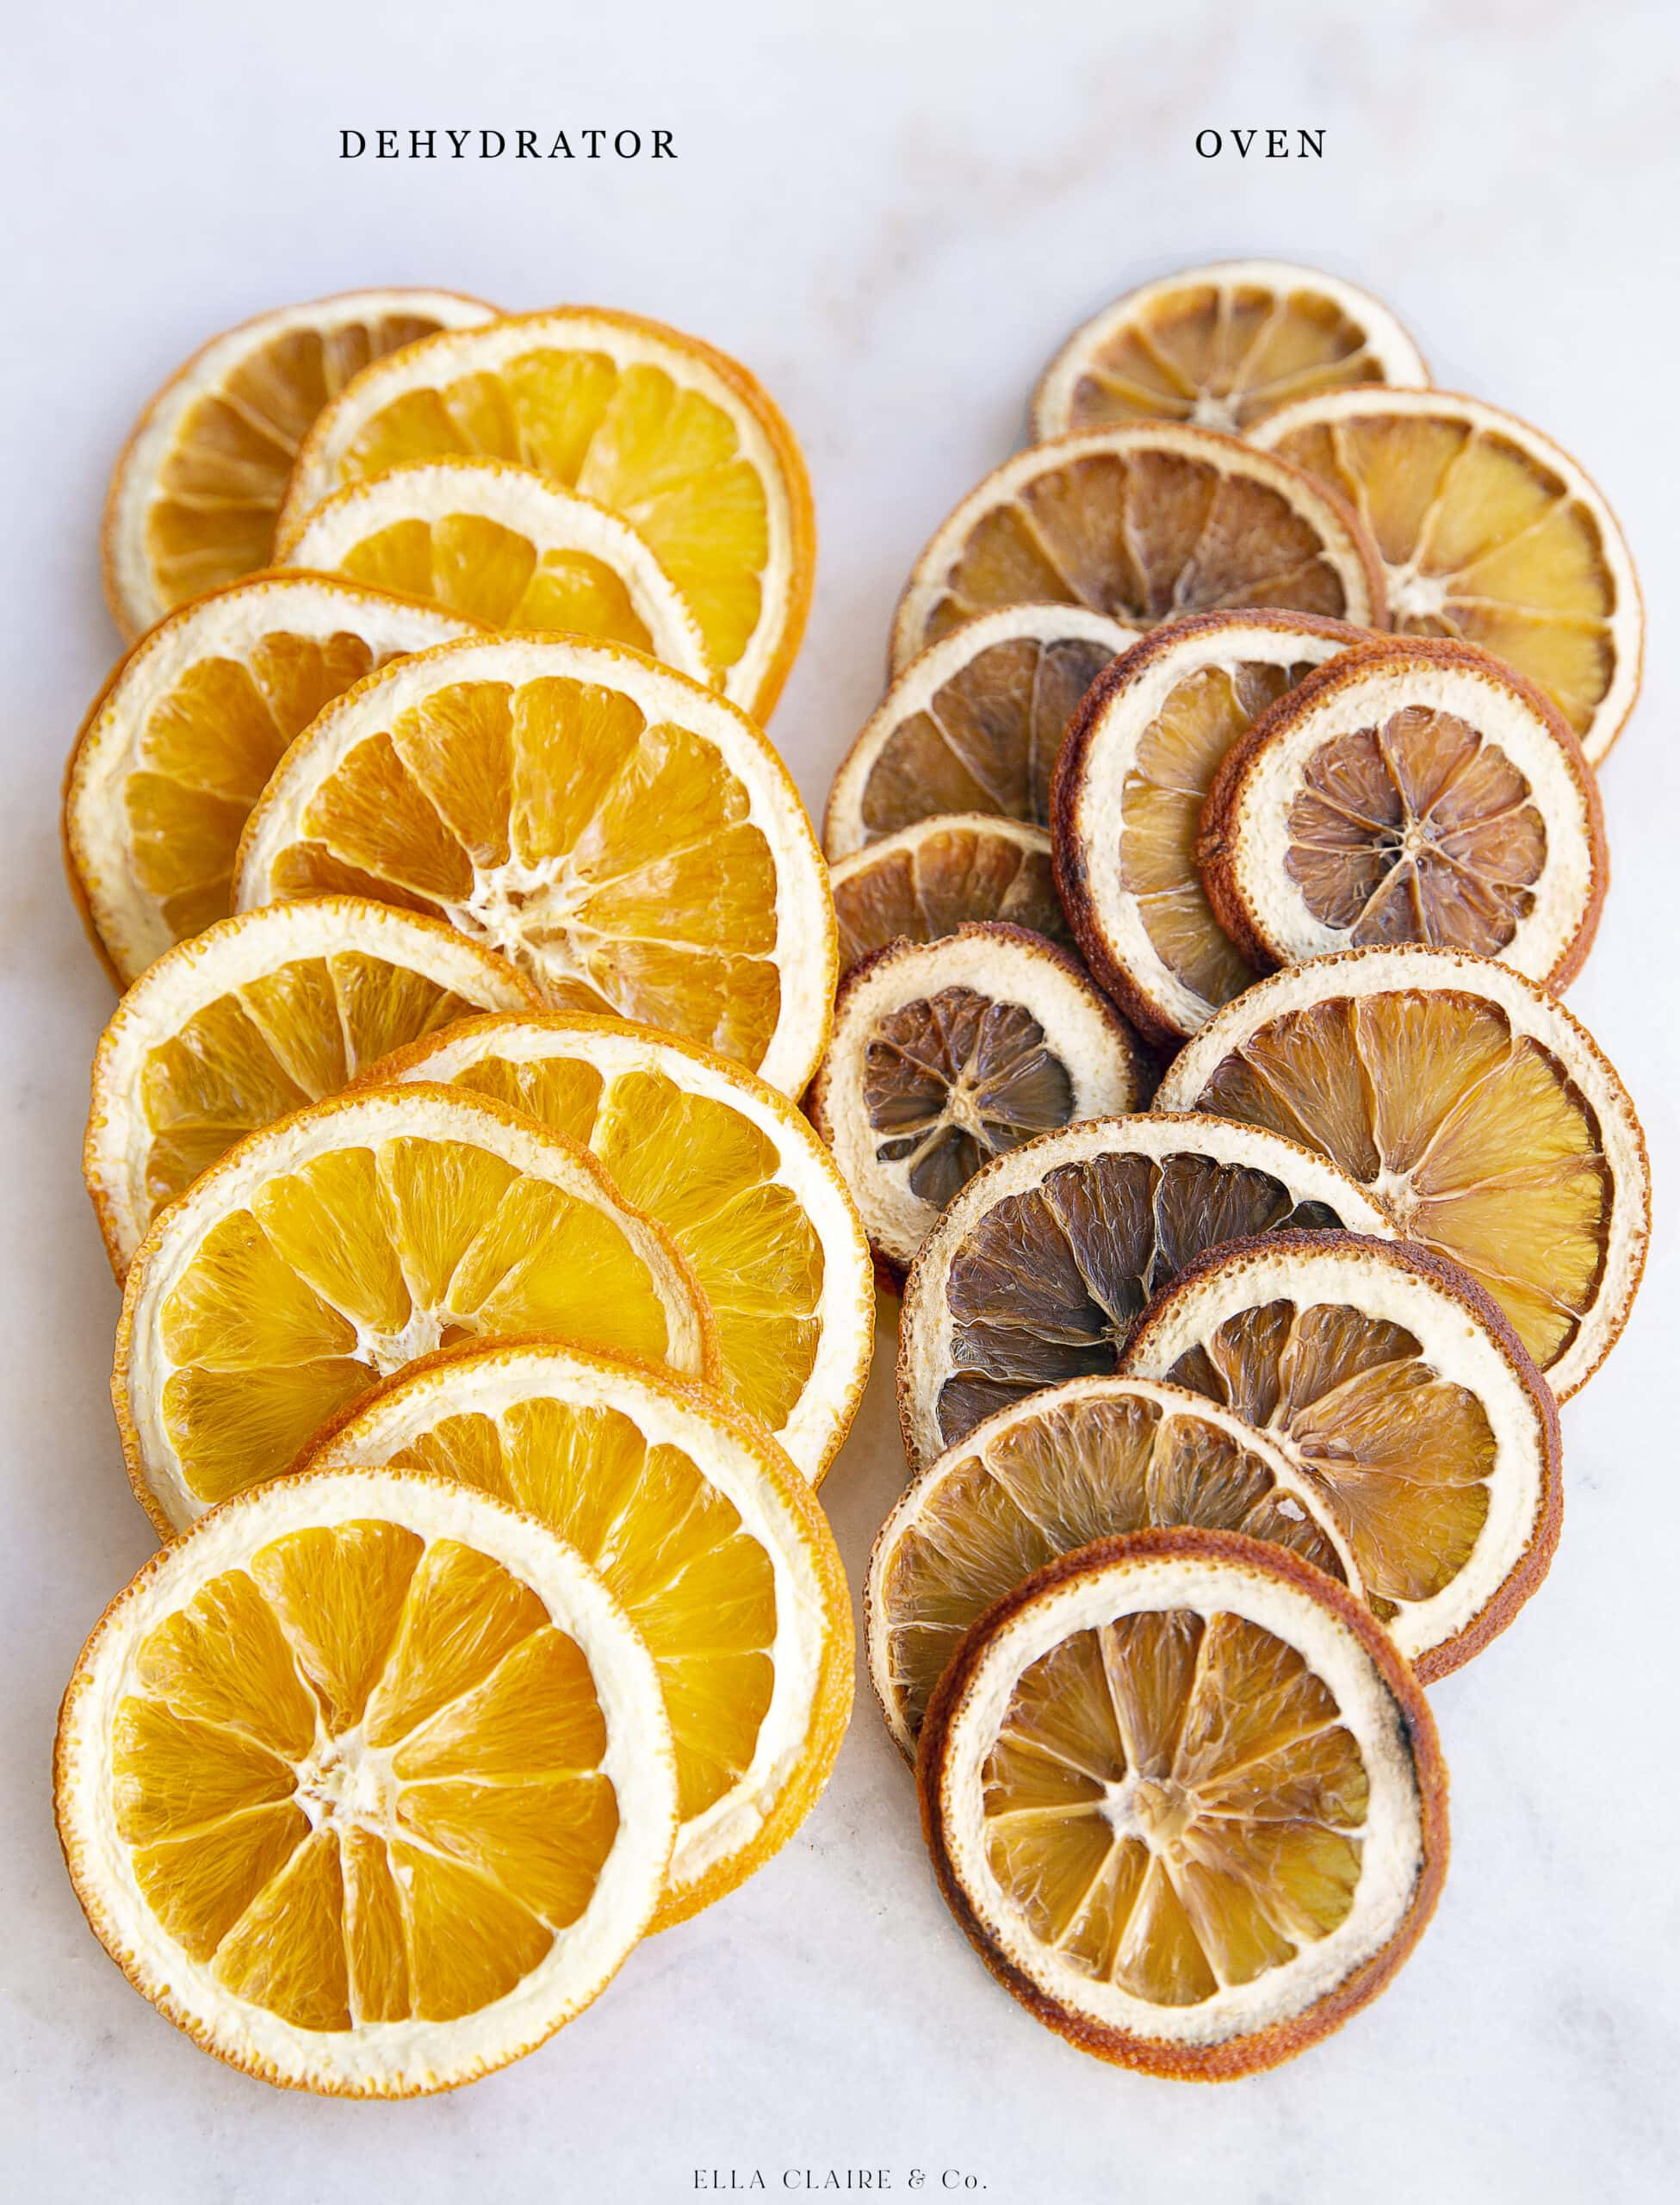 difference between oven and dehydrated oranges